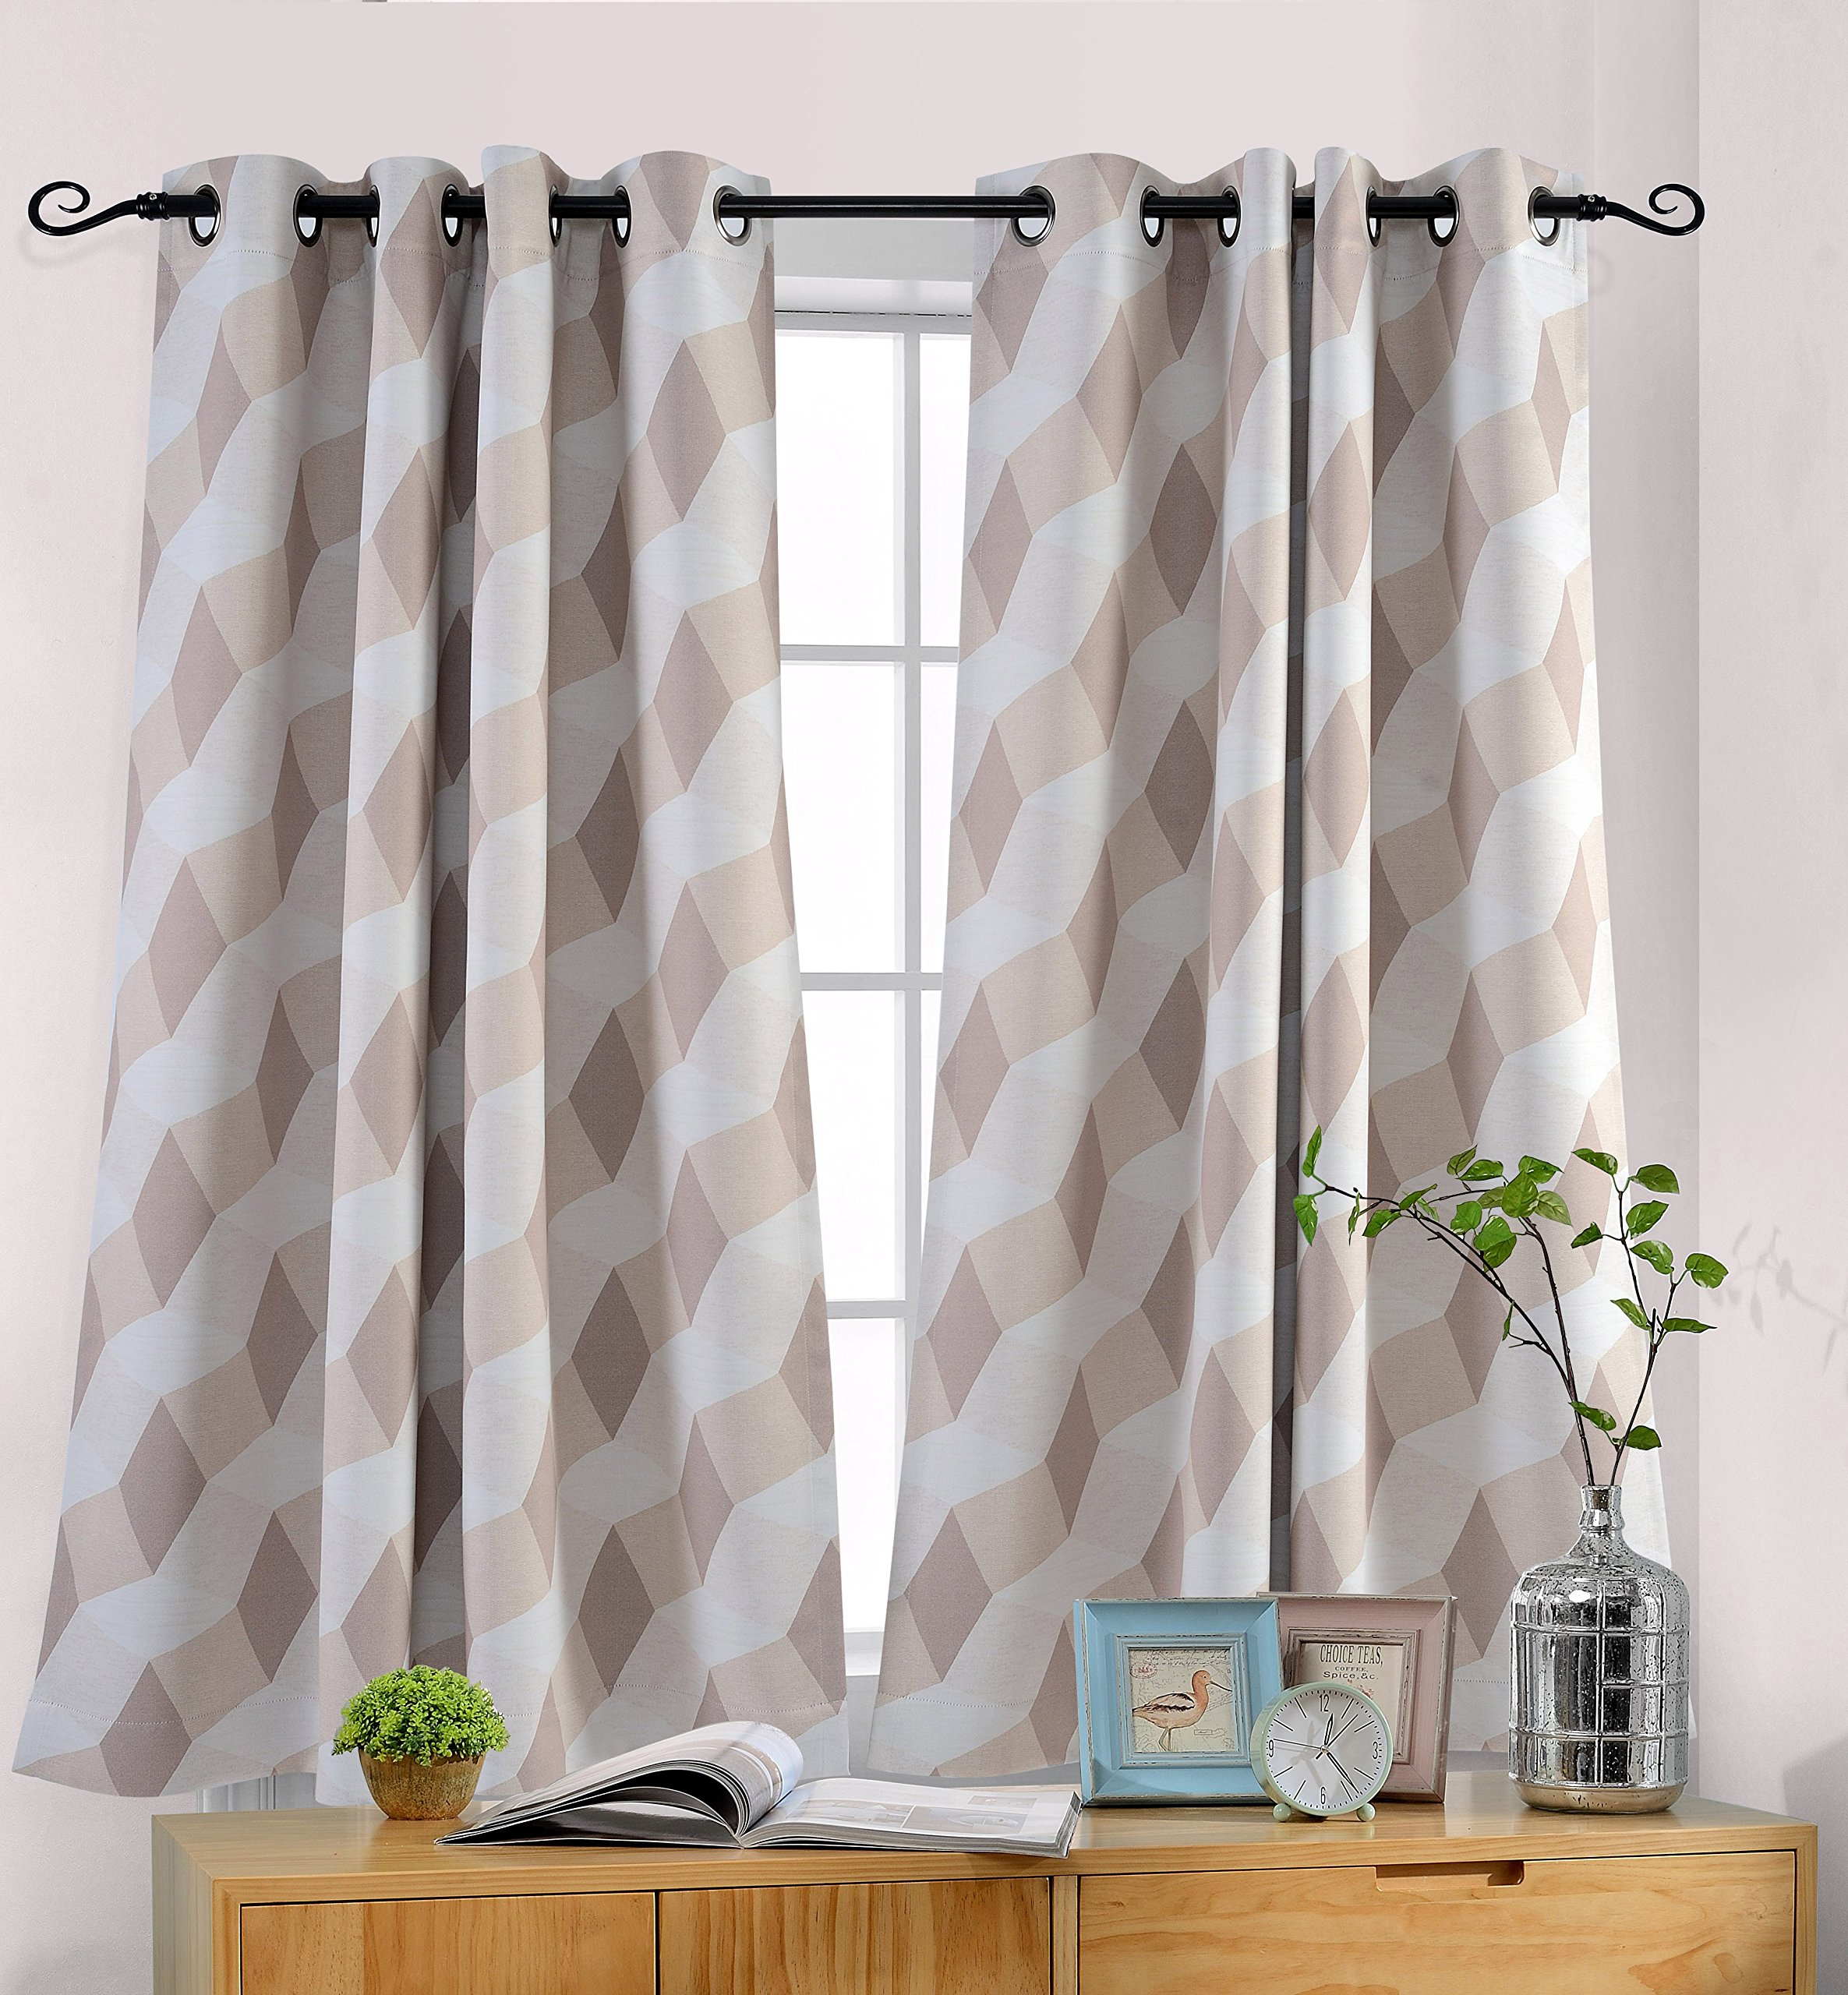 MYSKY HOME 3D Geometry Fashion Design Print Thermal Insulated Blackout Curtain with Grommet Top for Dining Room, 52 by 63 inch, Beige - 1 Panel